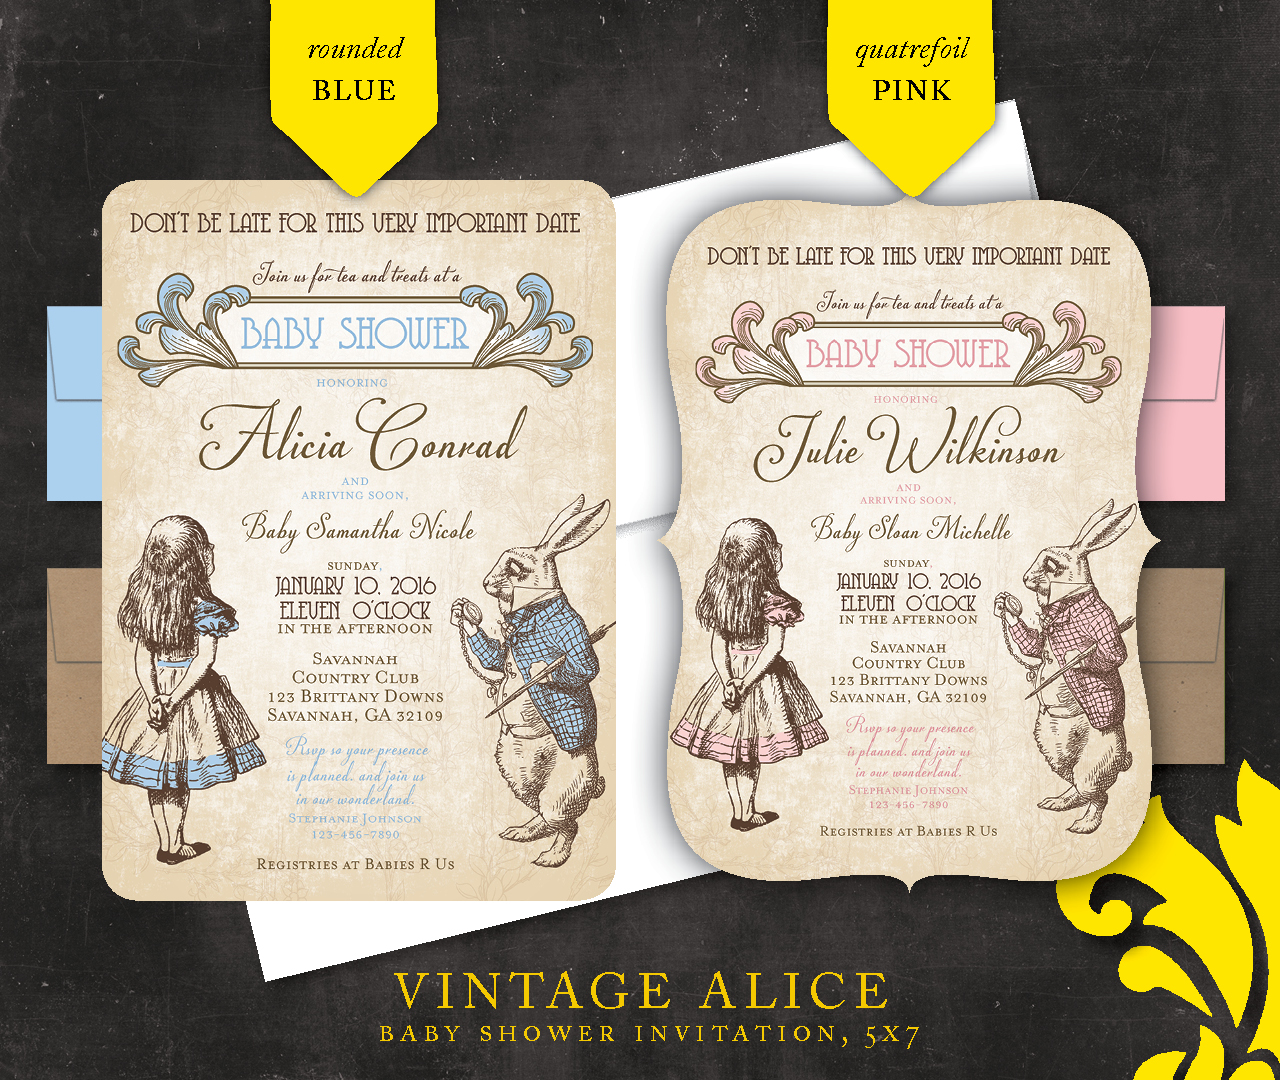 already have one alice in wonderland theme invitation design that